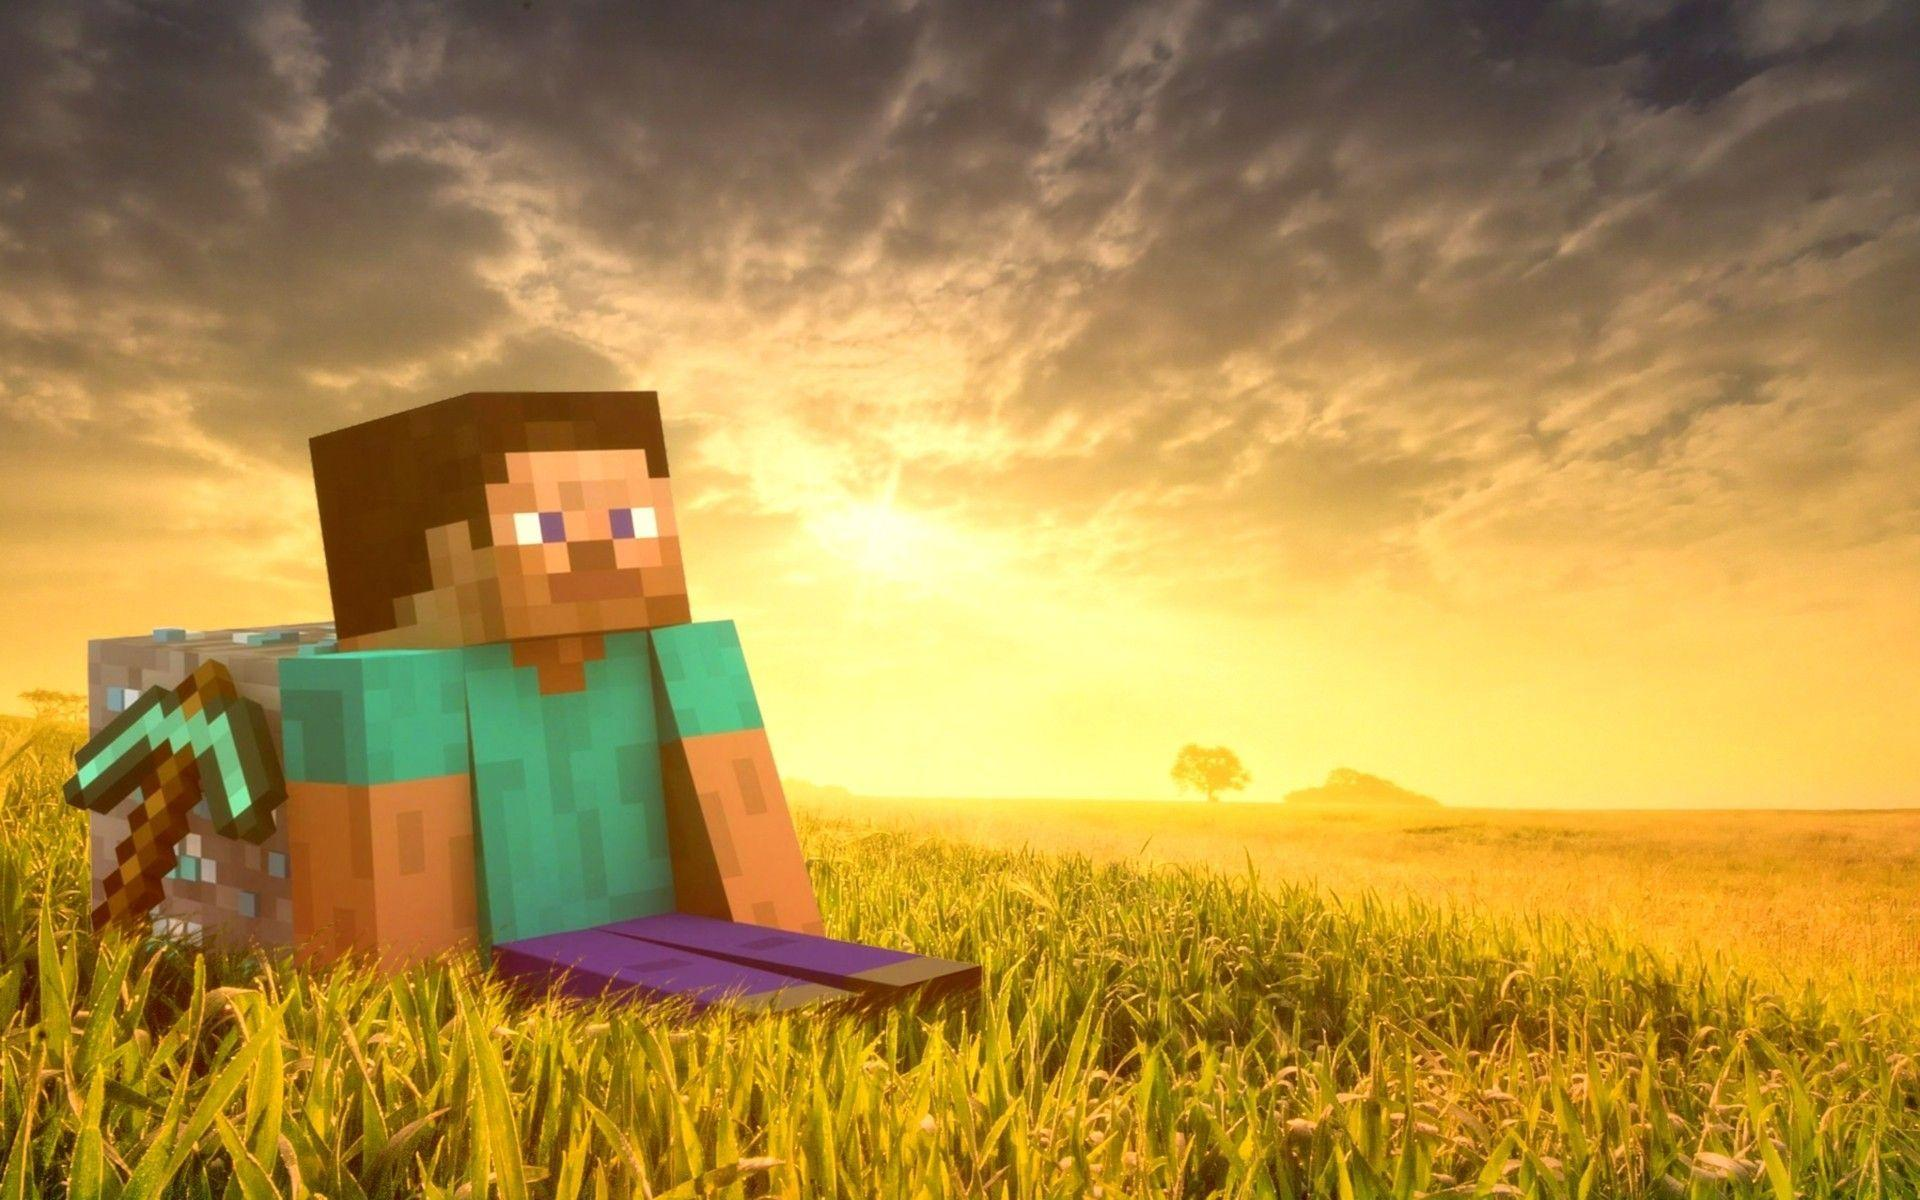 Minecraft Wallpapers - Full HD wallpaper search